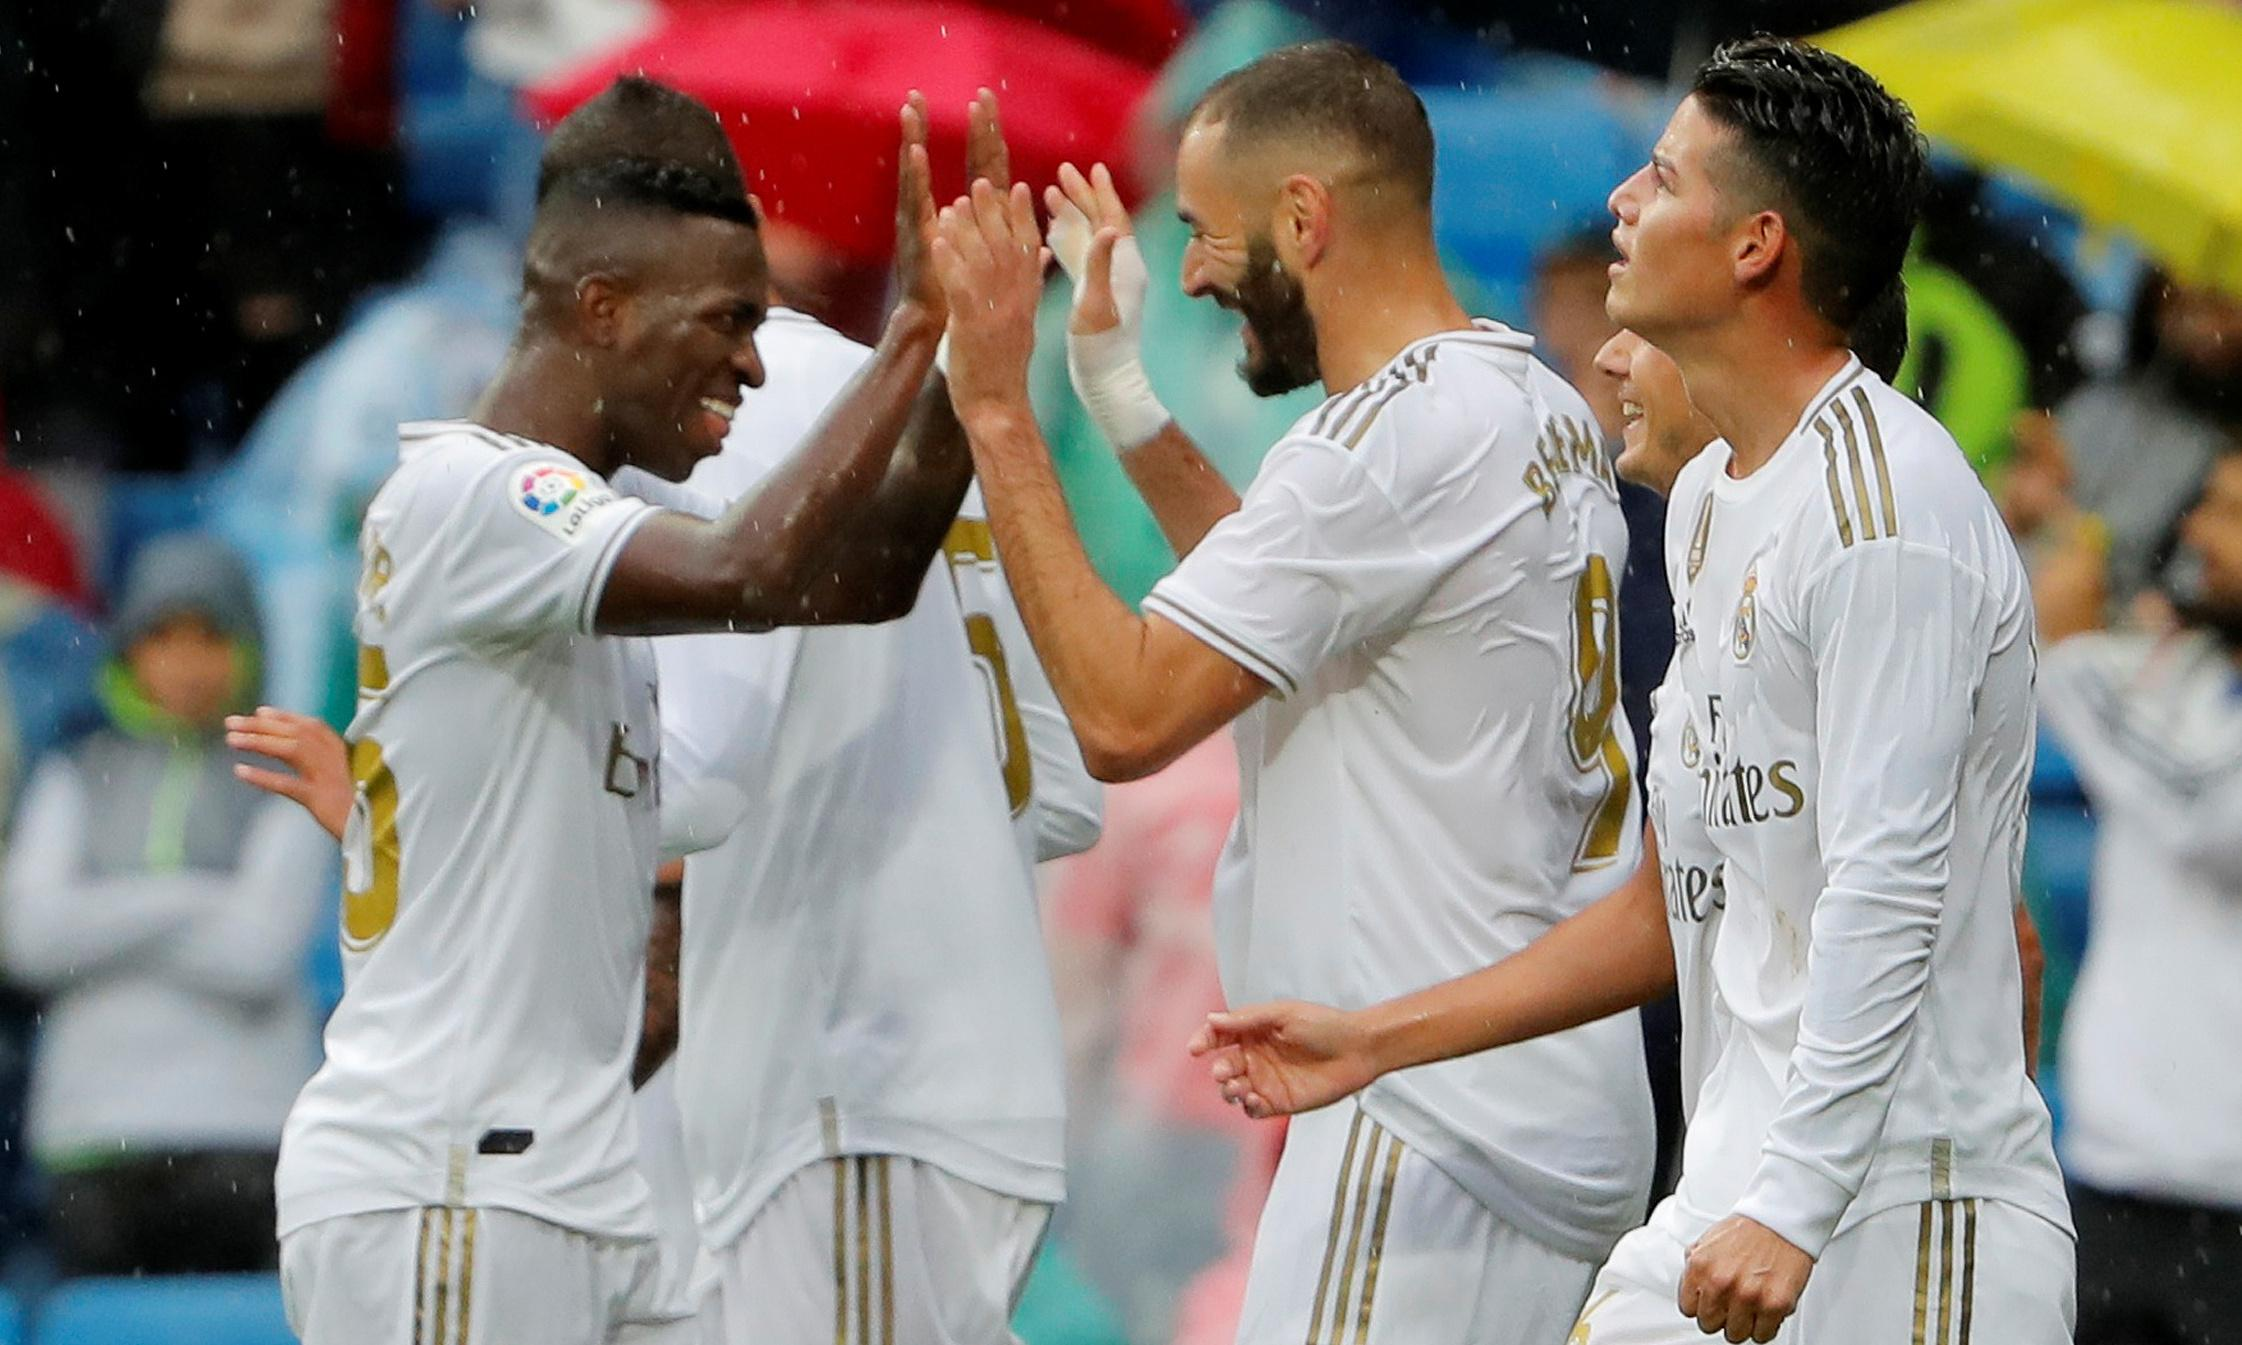 Real Madrid relieved to hold on for nervy win after Levante fightback